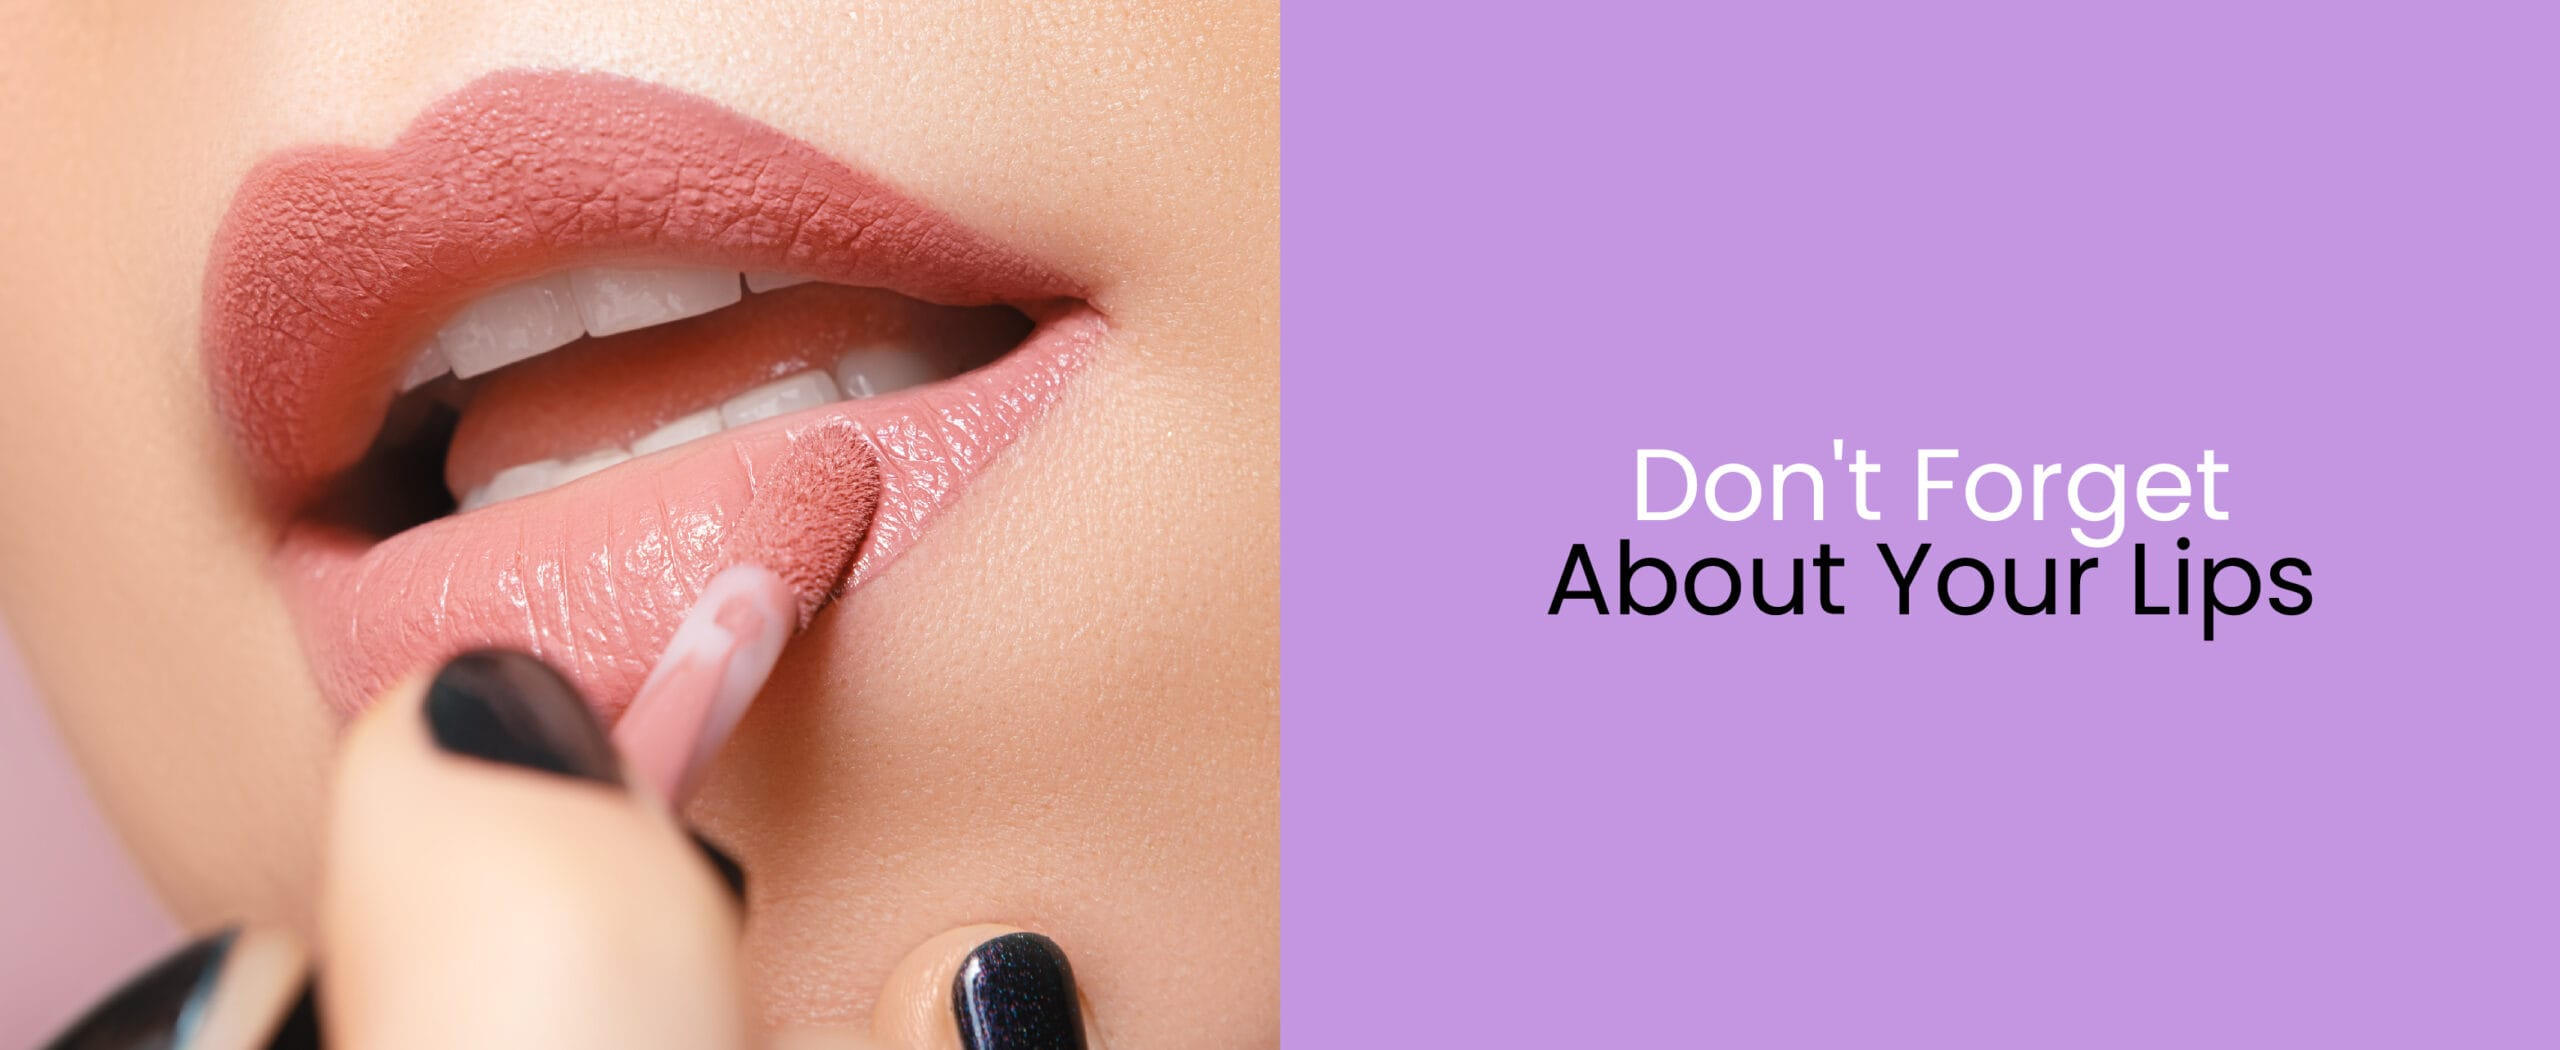 6. Dont Forget About Your Lips